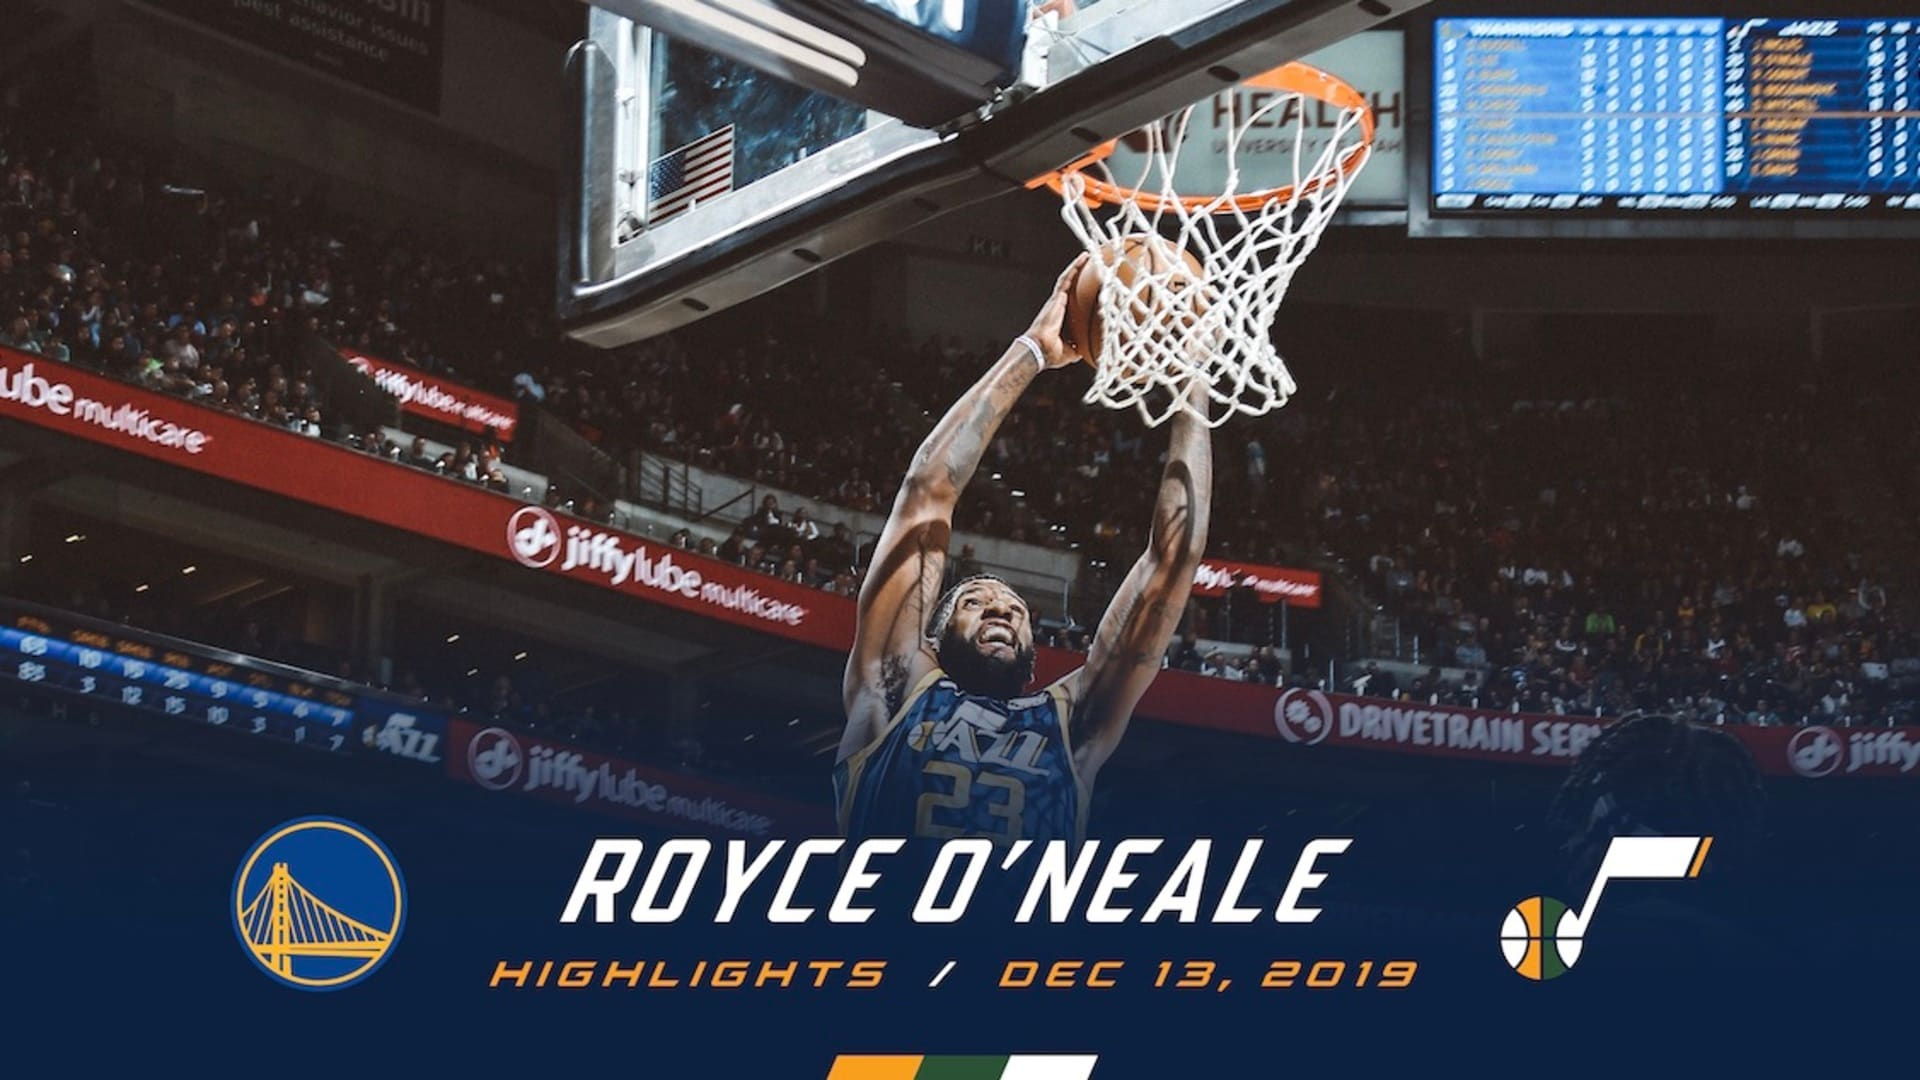 Highlights: Royce O'Neale — 14 points, 4 assists